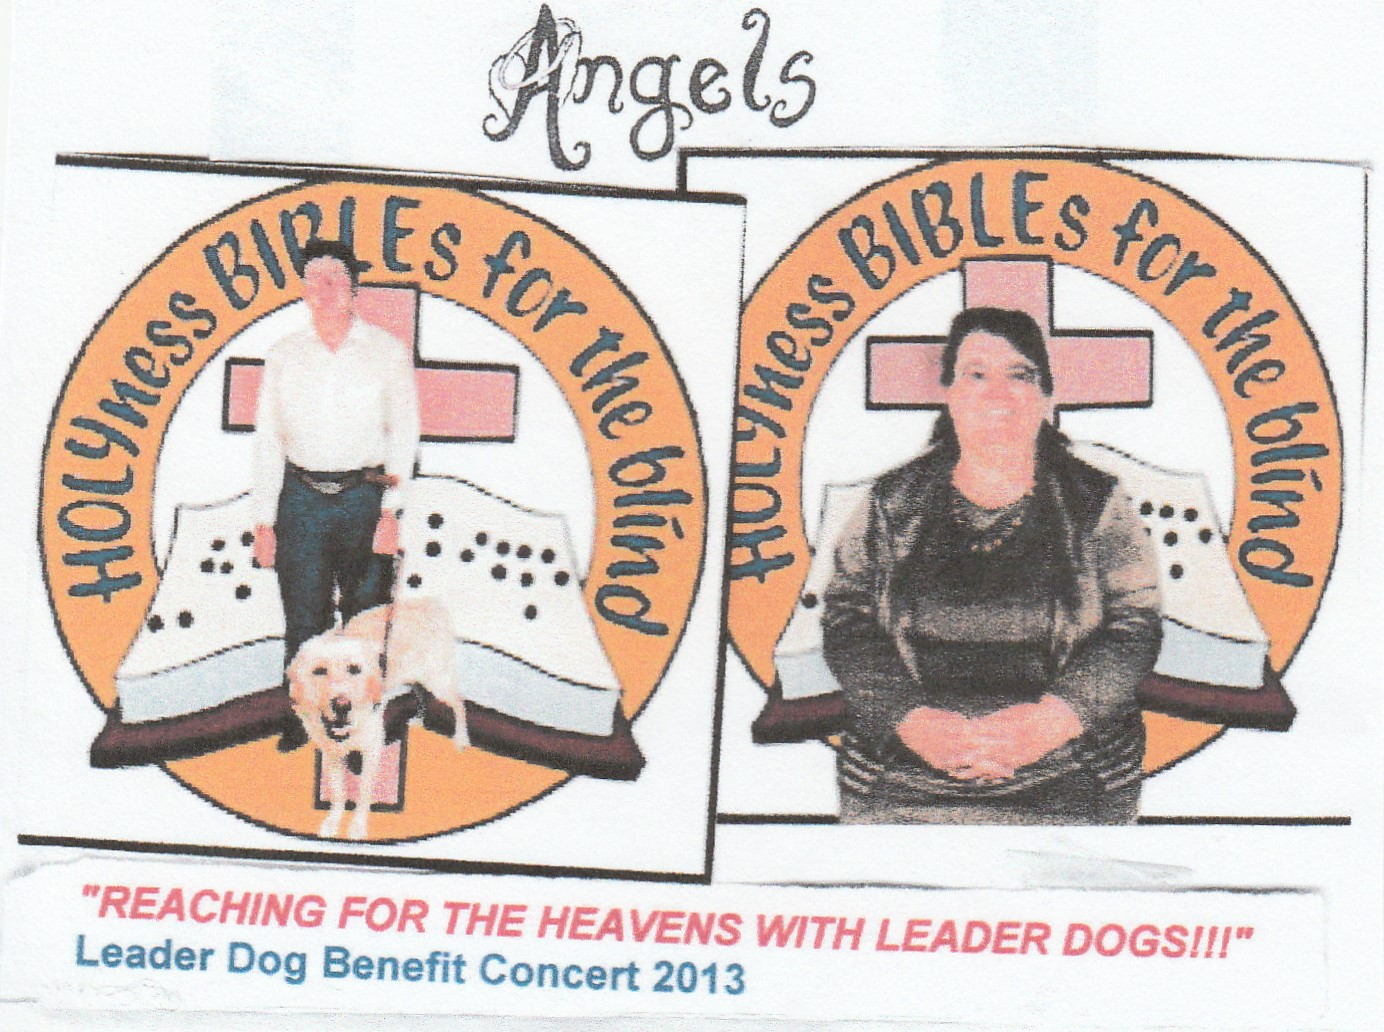 REACHING FOR THE HEAVENS WITH LEADER DOGS!!!, Album Cover